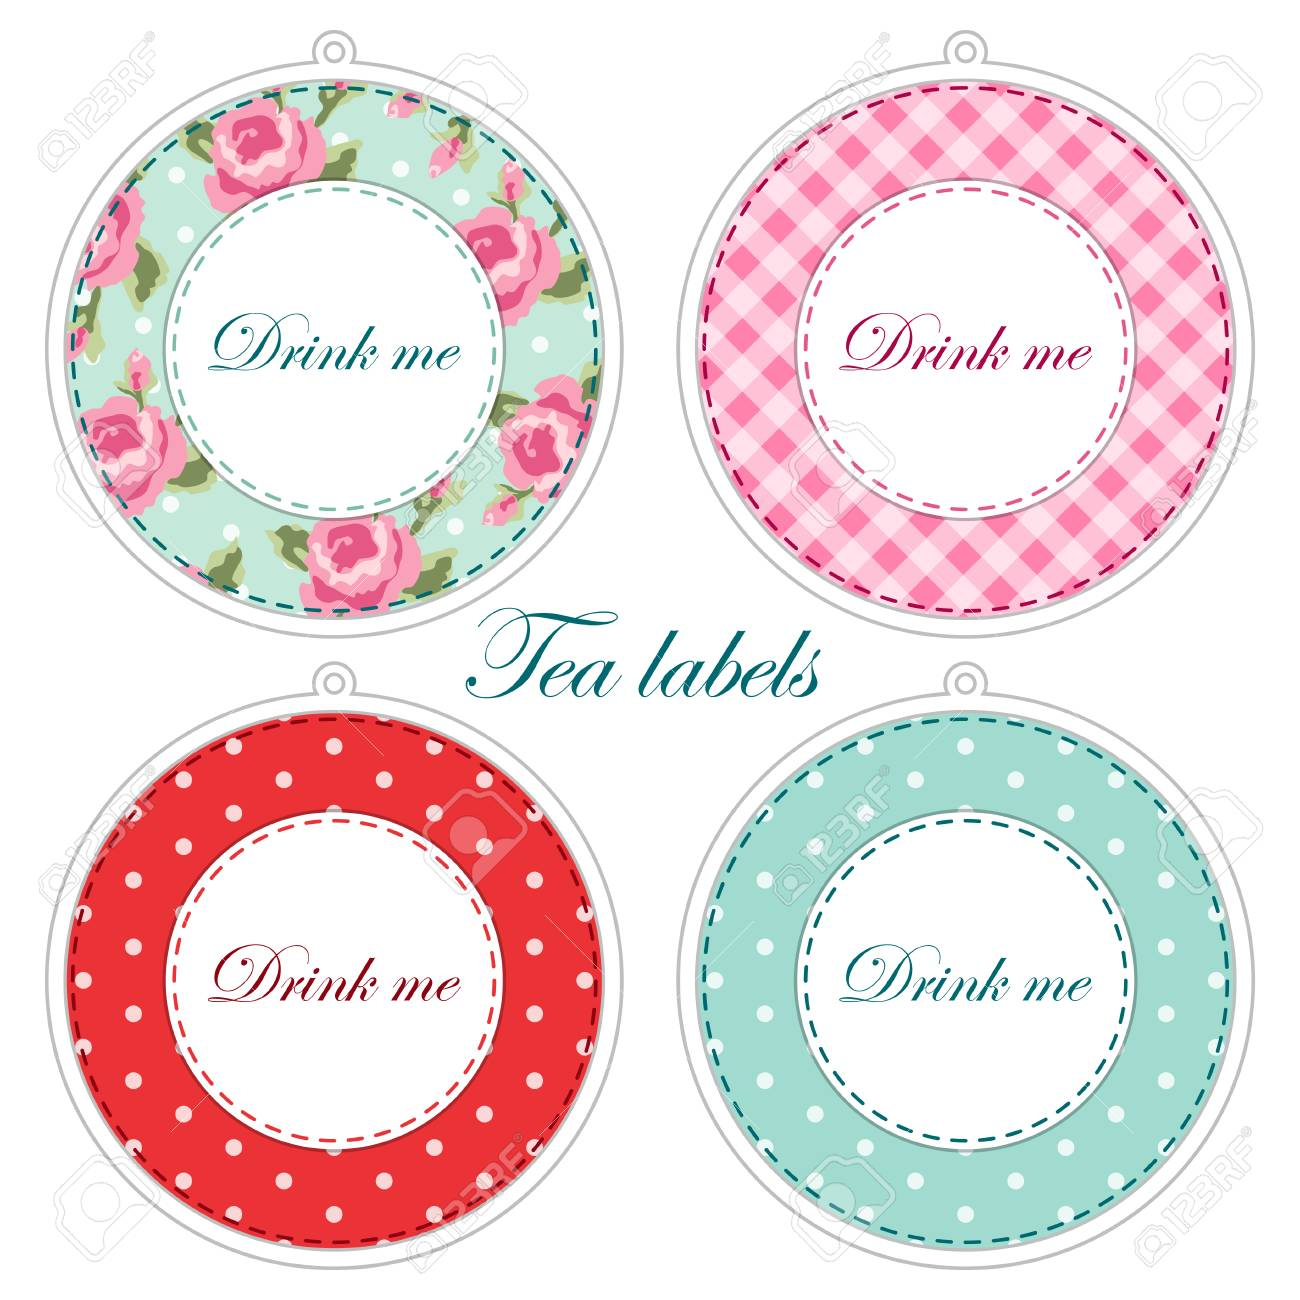 image regarding Tea Party Printable titled Tea social gathering printables as tea labels,cupcake toppers or tags within..